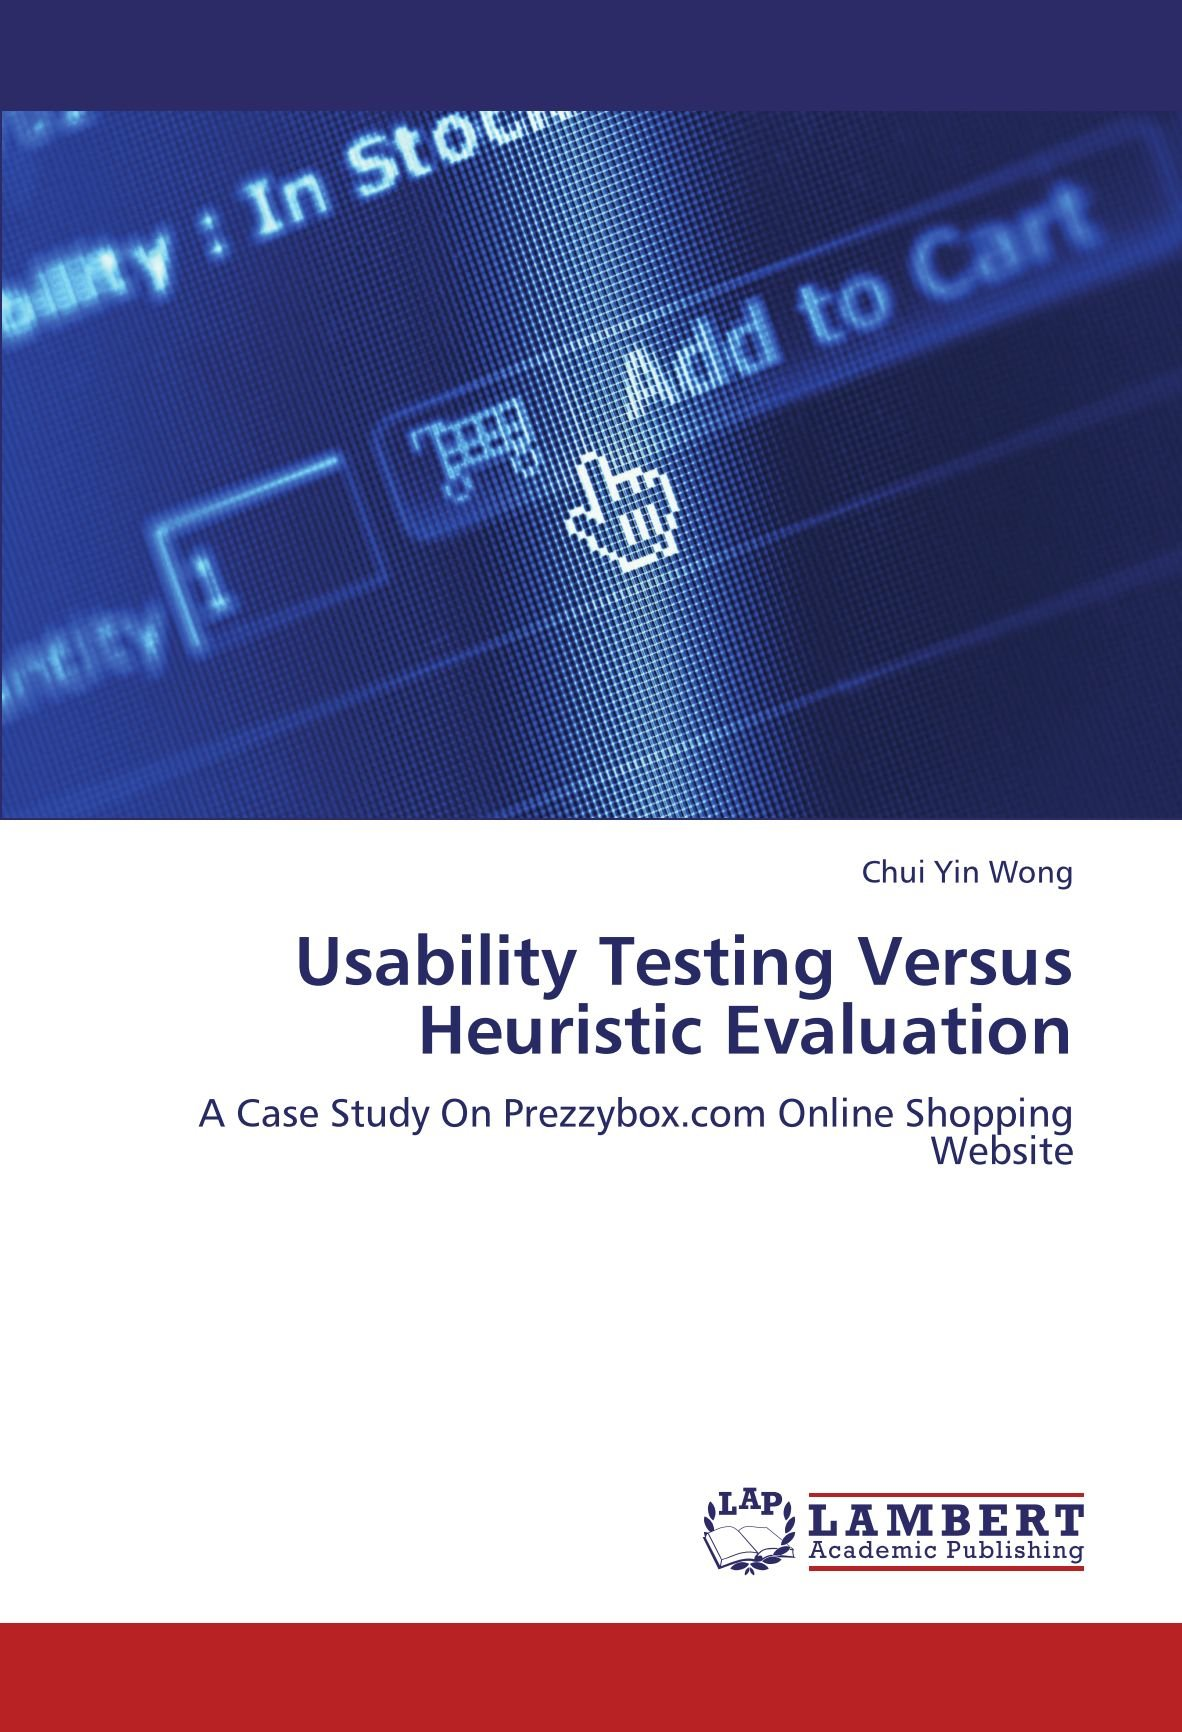 Usability Testing Versus Heuristic Evaluation: A Case Study On Prezzybox.com Online Shopping Website ebook